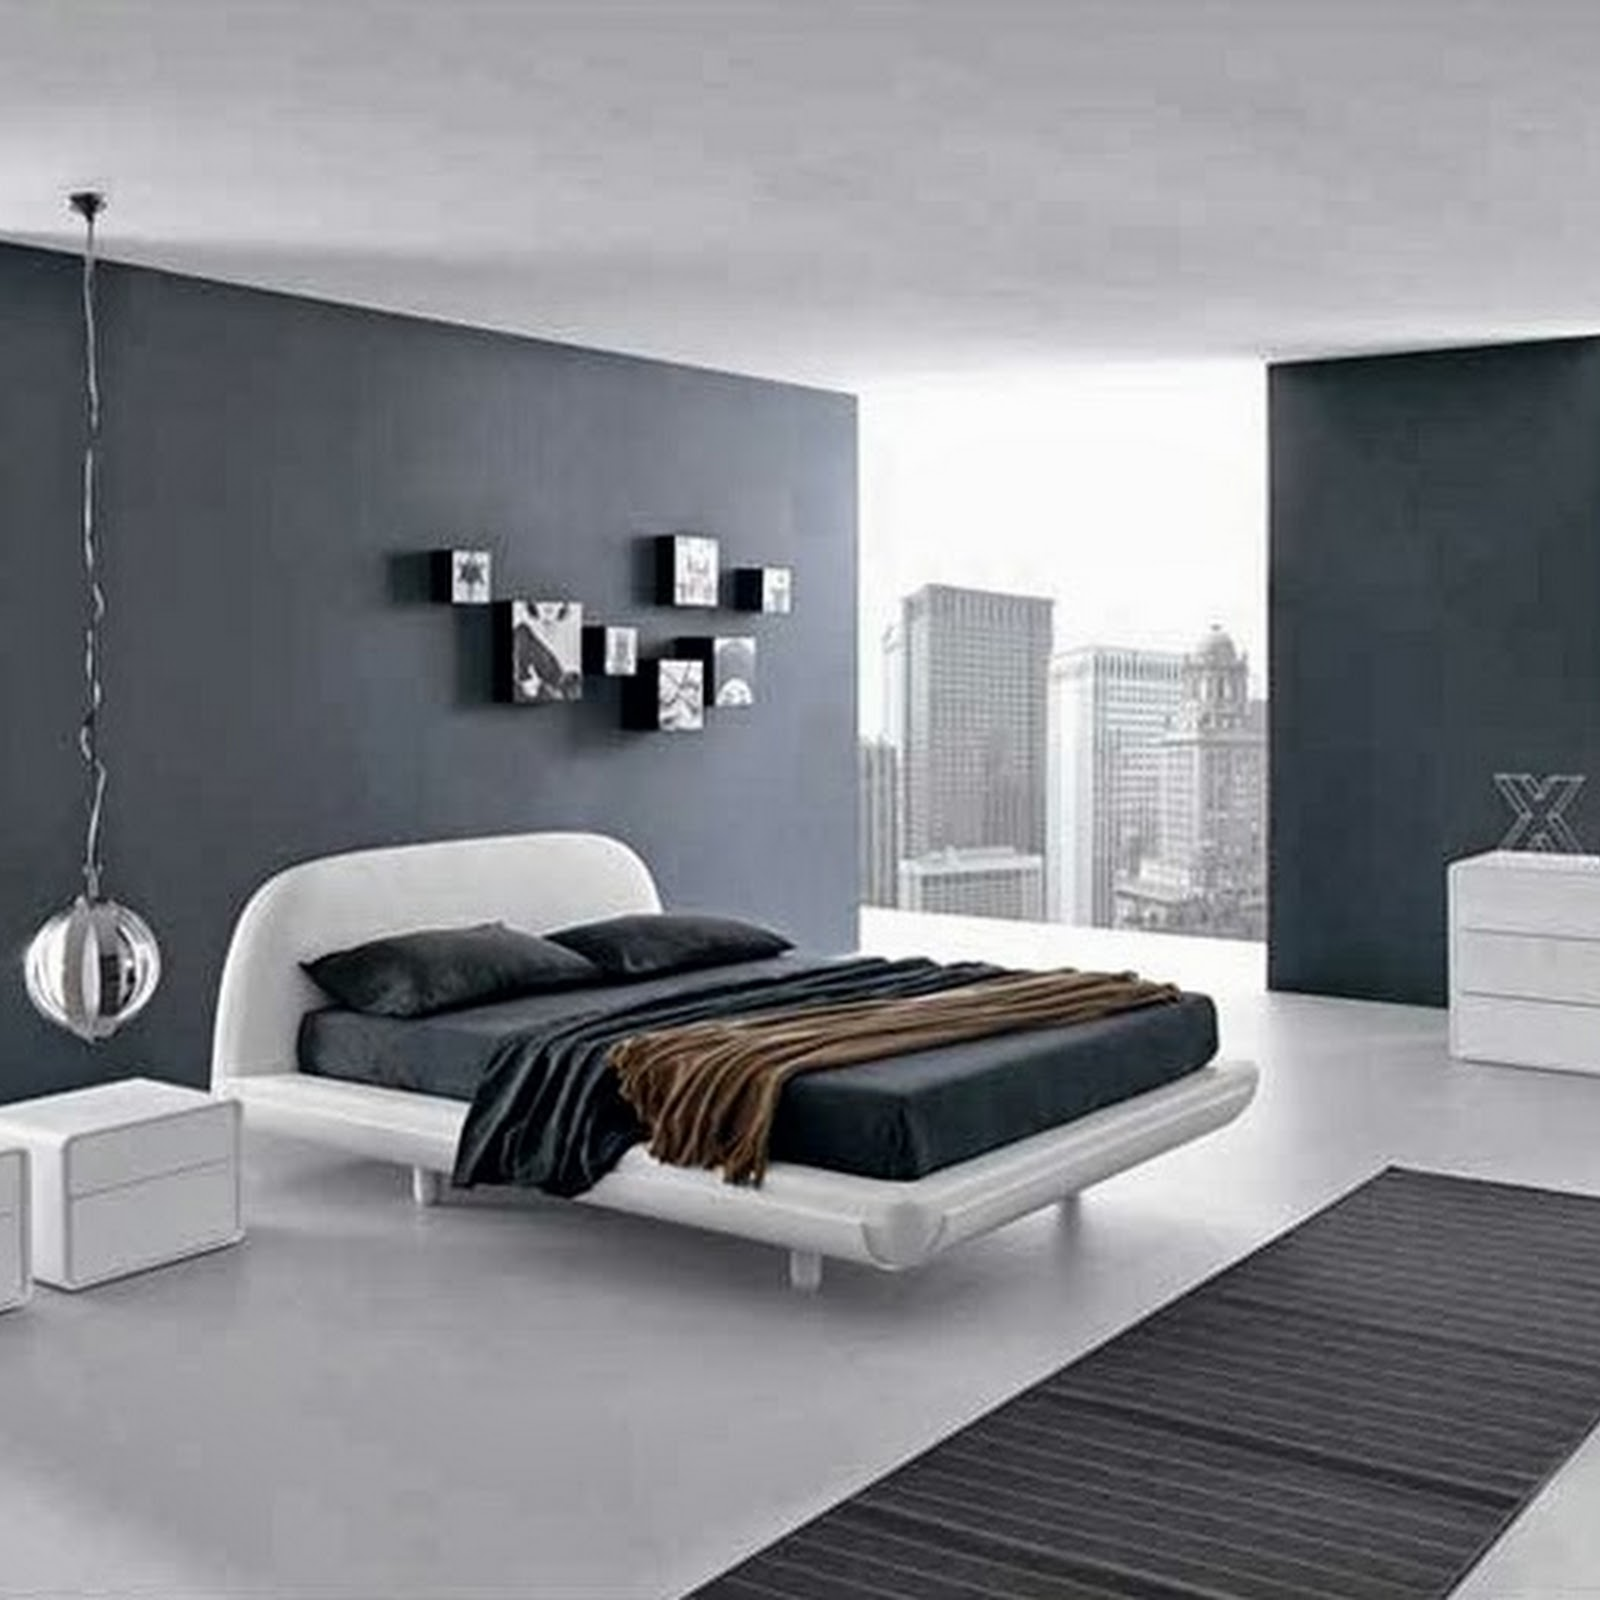 Bedroom Paint: Elegant Gray Paint Colors For Bedrooms